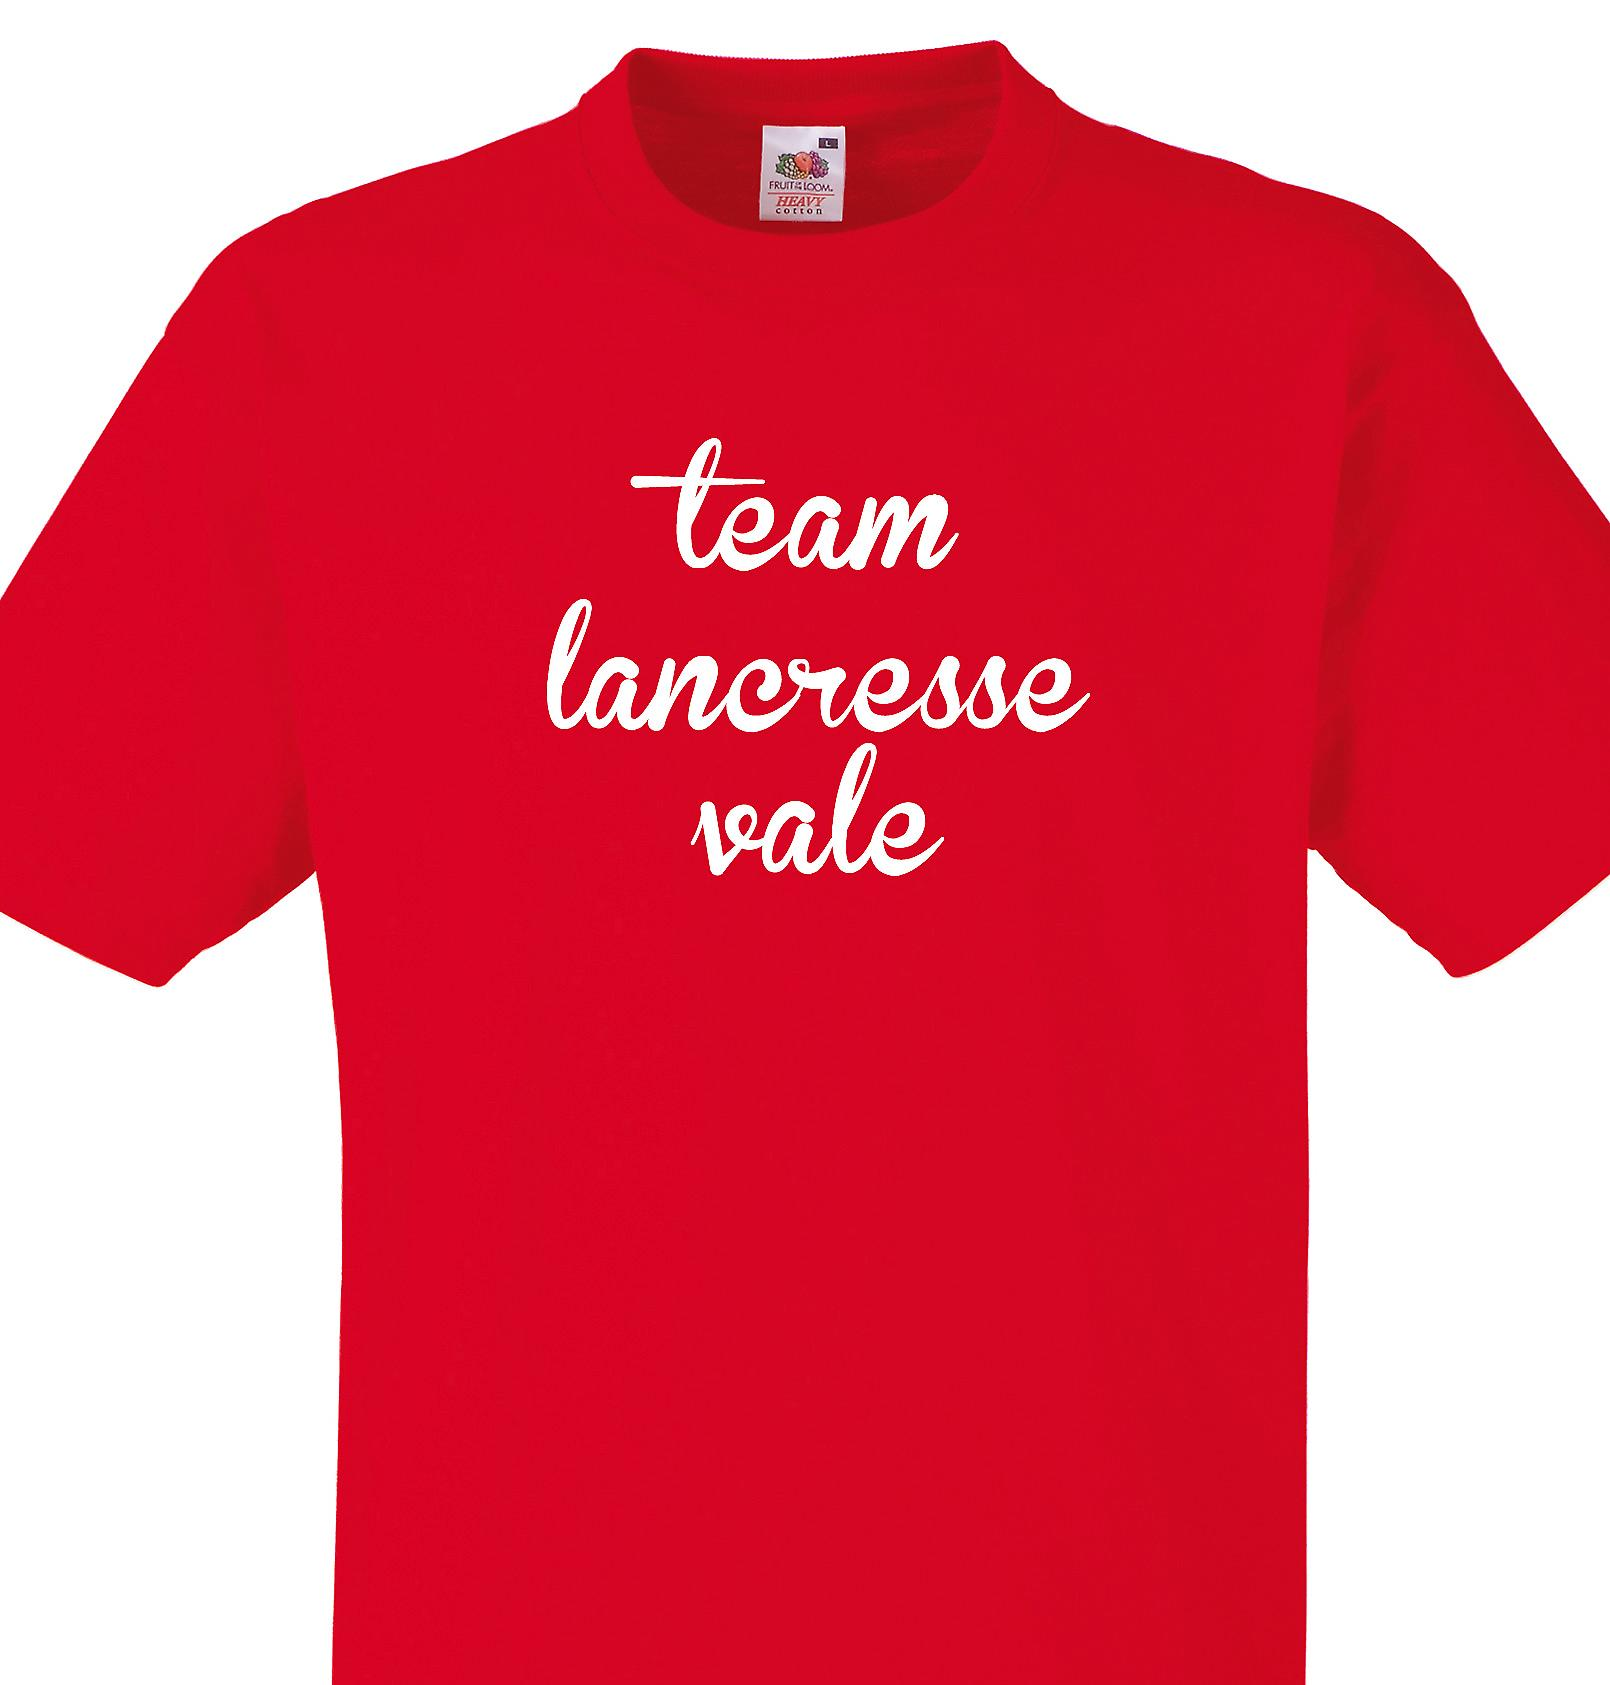 Team Lancresse vale Red T shirt